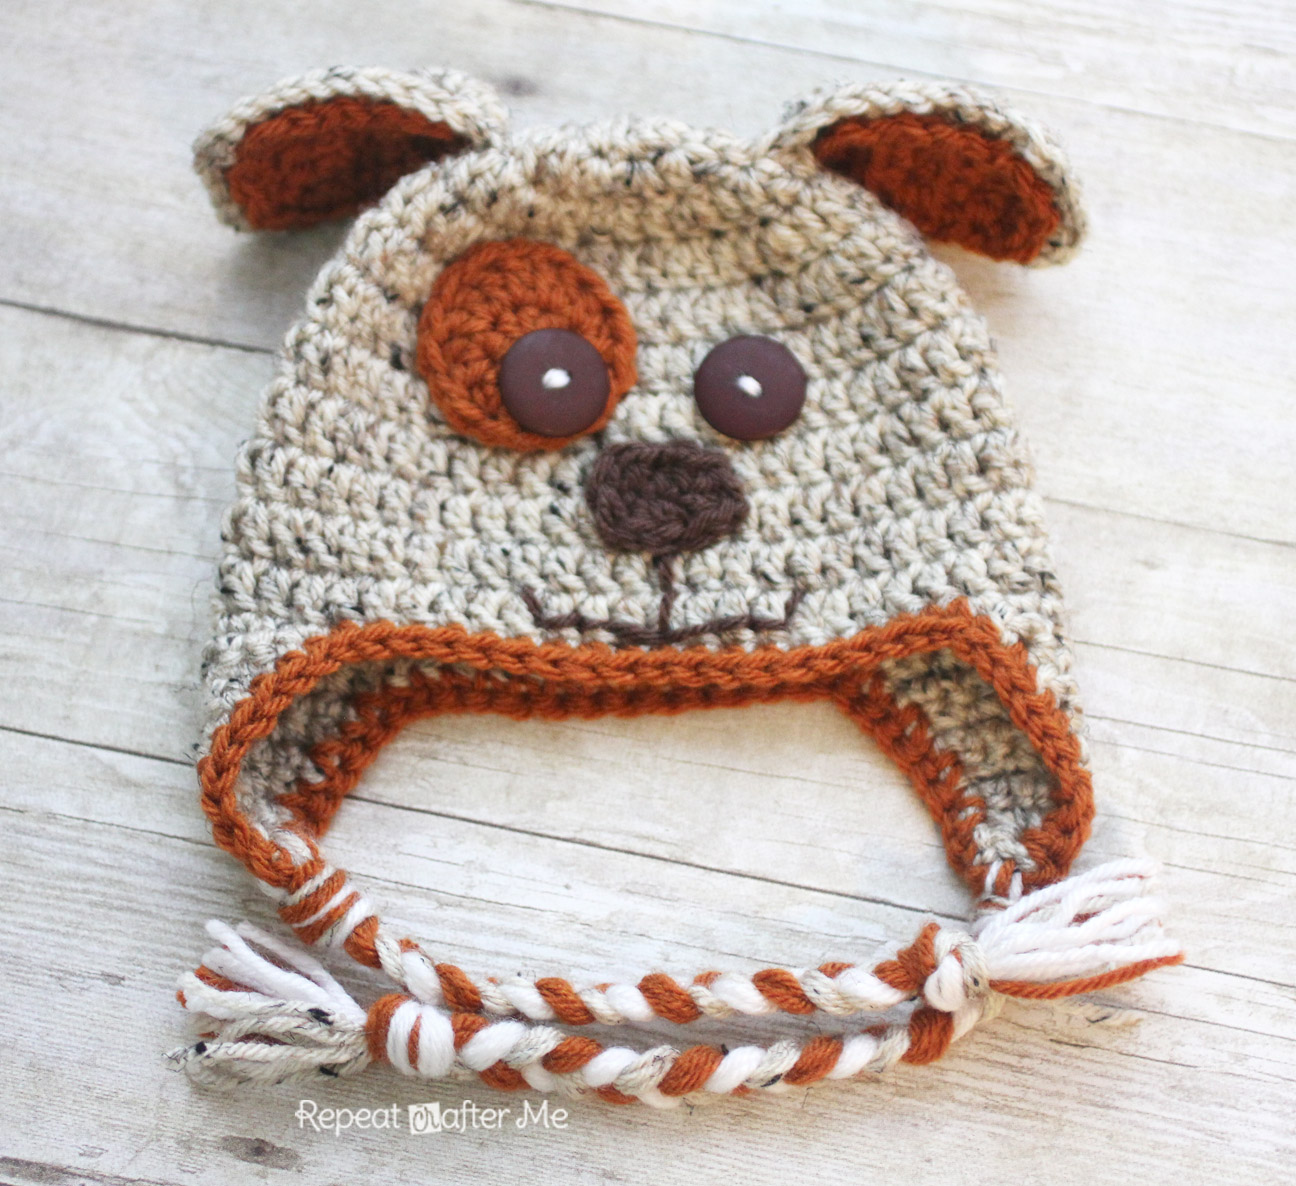 Puppy Dog Hat Knitting Pattern : Crochet Puppy Hat Pattern - Repeat Crafter Me